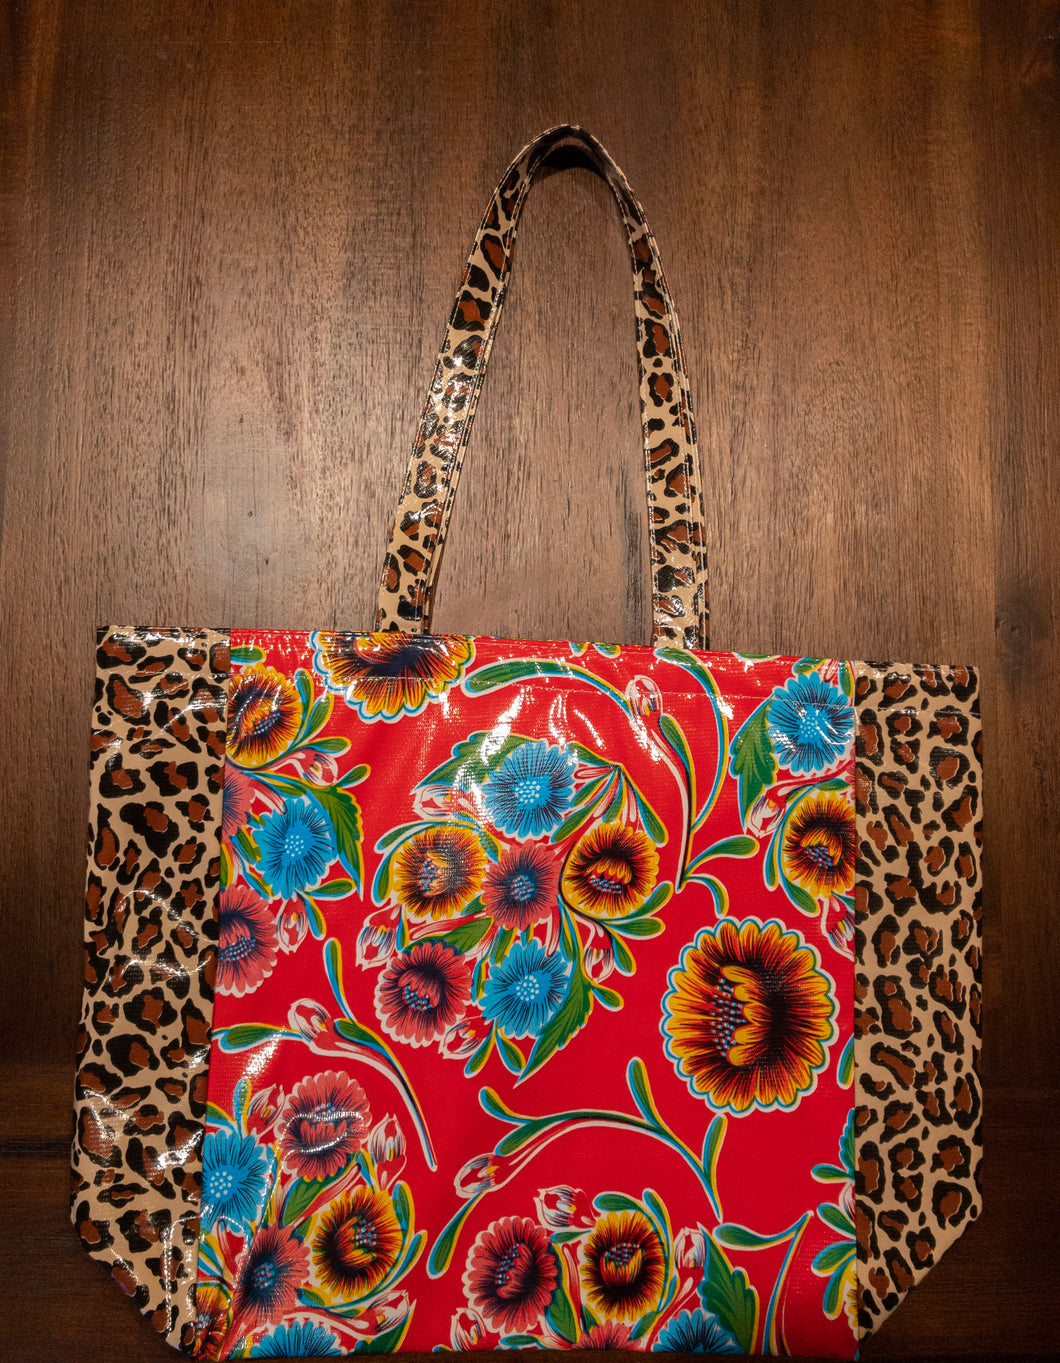 Flower and Cheetah Print Bag